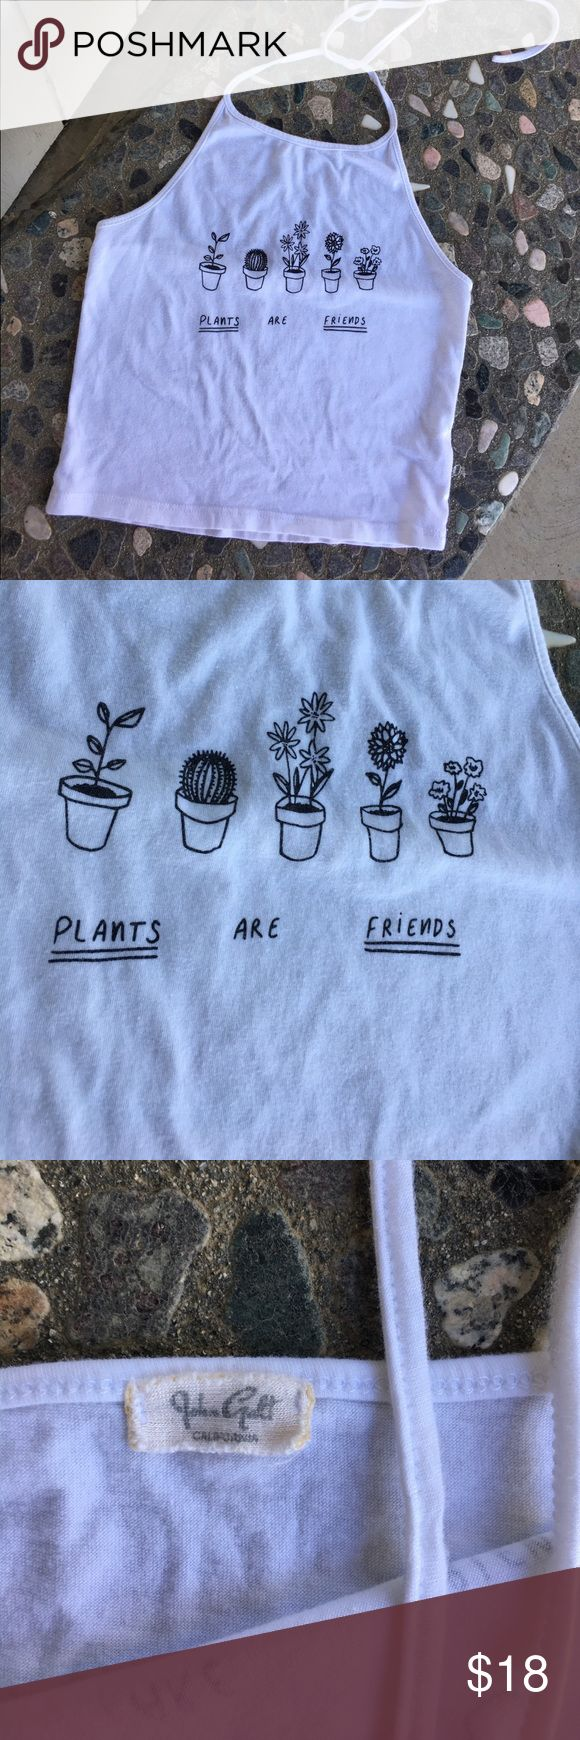 """Brandy Melville """"Plants are friends"""" Halter This top has never been worn or washed. 🌿🌿🌿🌿🌿 This shirt is a tad sheer so keep that in mind when purchasing. 🍒🍒🍒🍒 If you have any questions please feel free to ask. Brandy Melville Tops"""